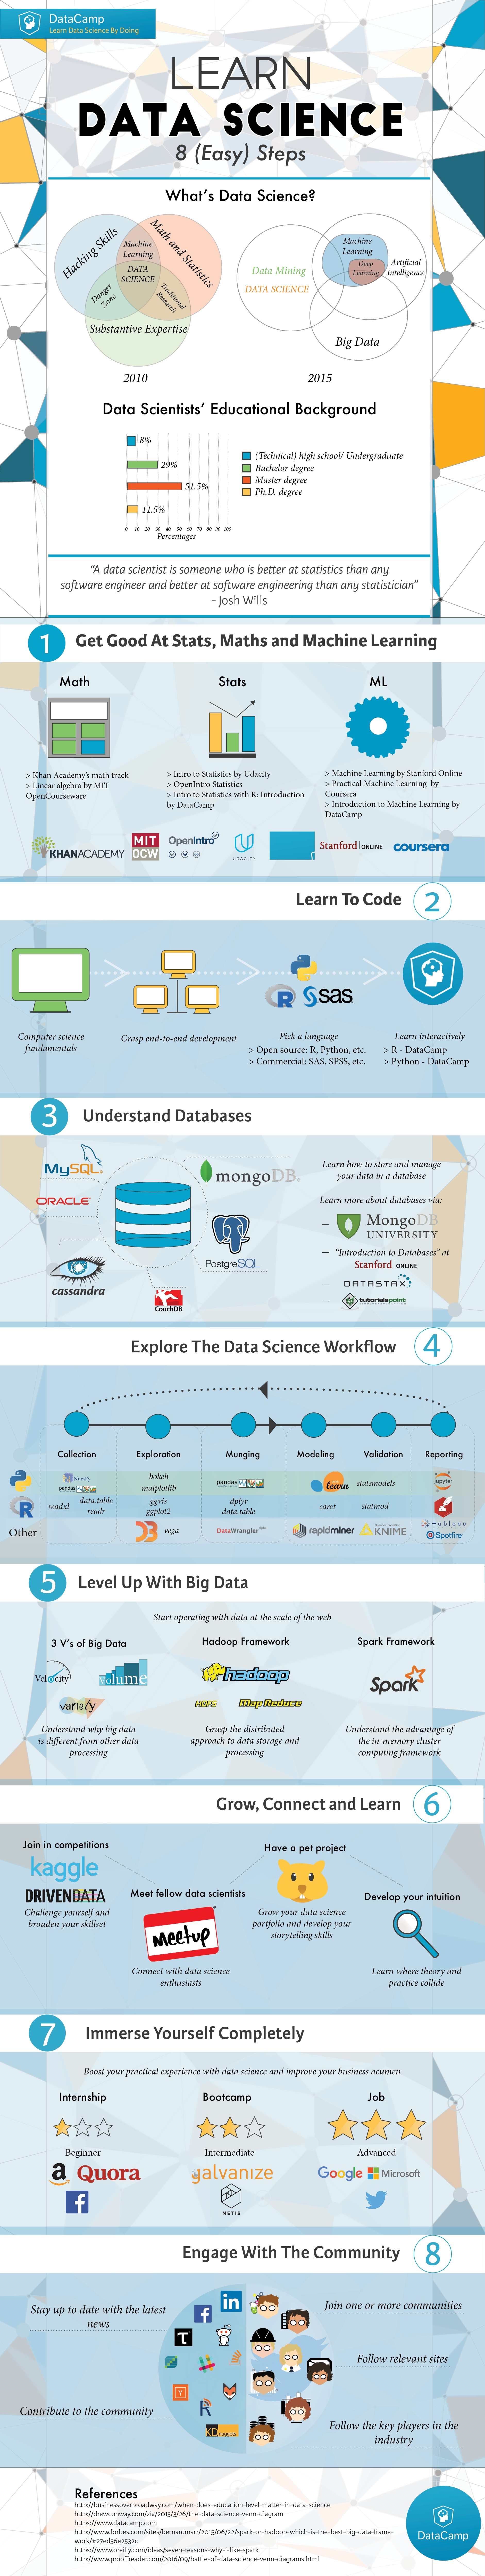 What are the best learning paths for data science? - Quora